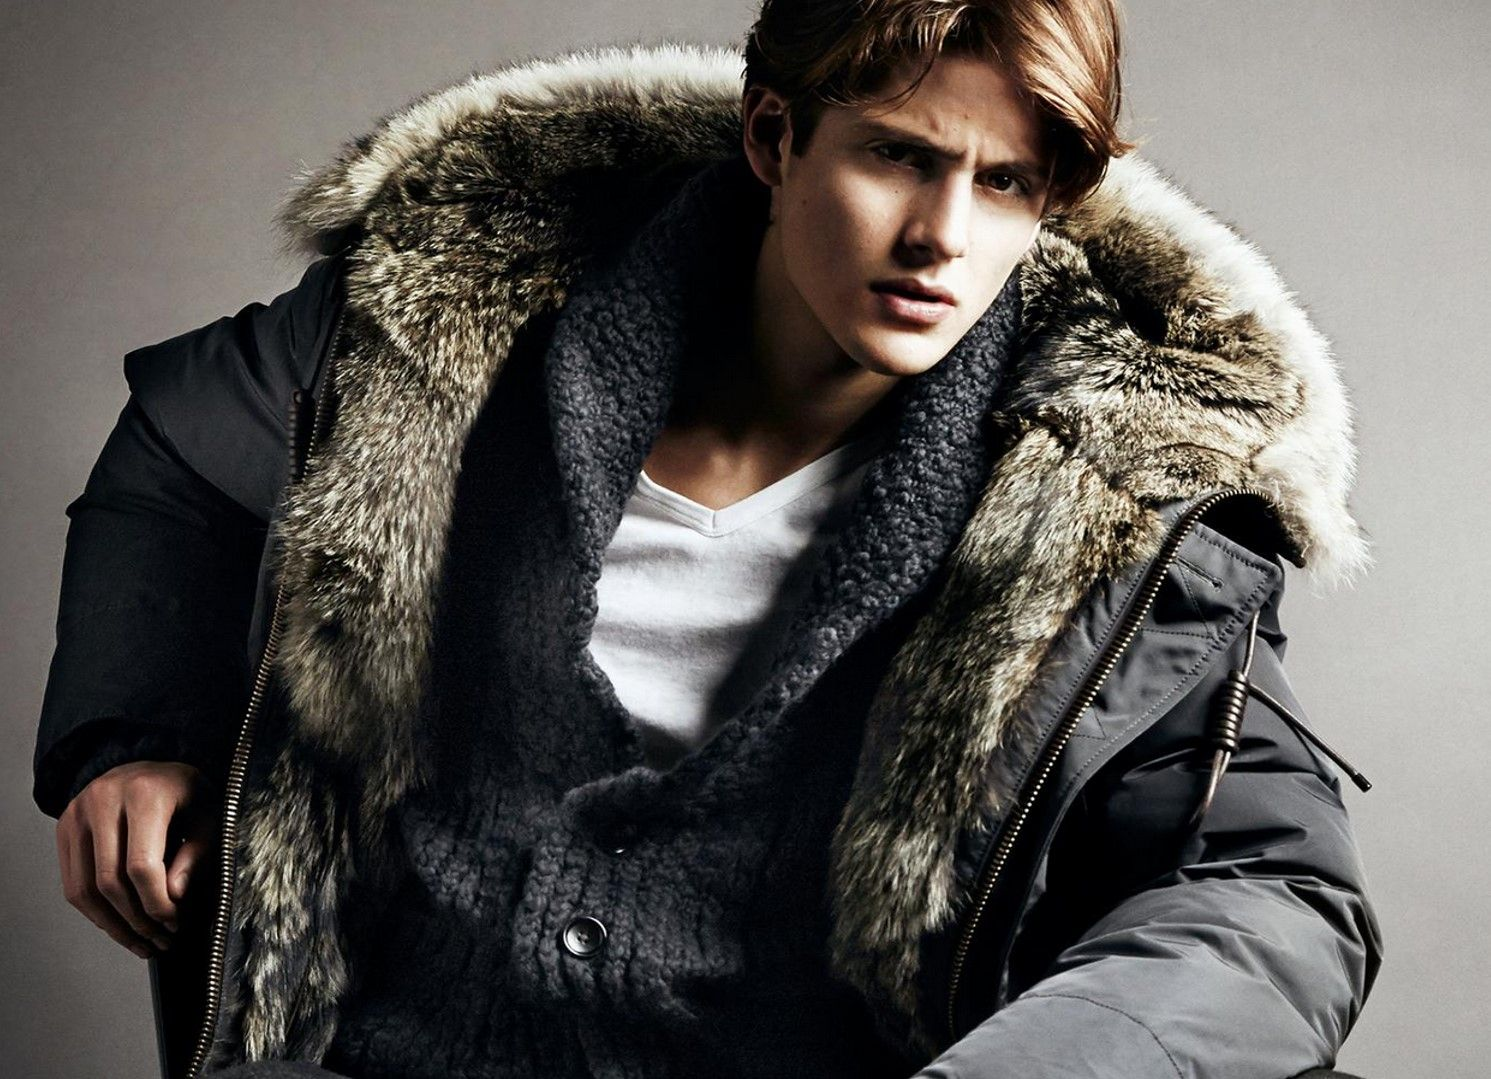 tom ford autumn winter 2014 fur lined military parka | fashion ...